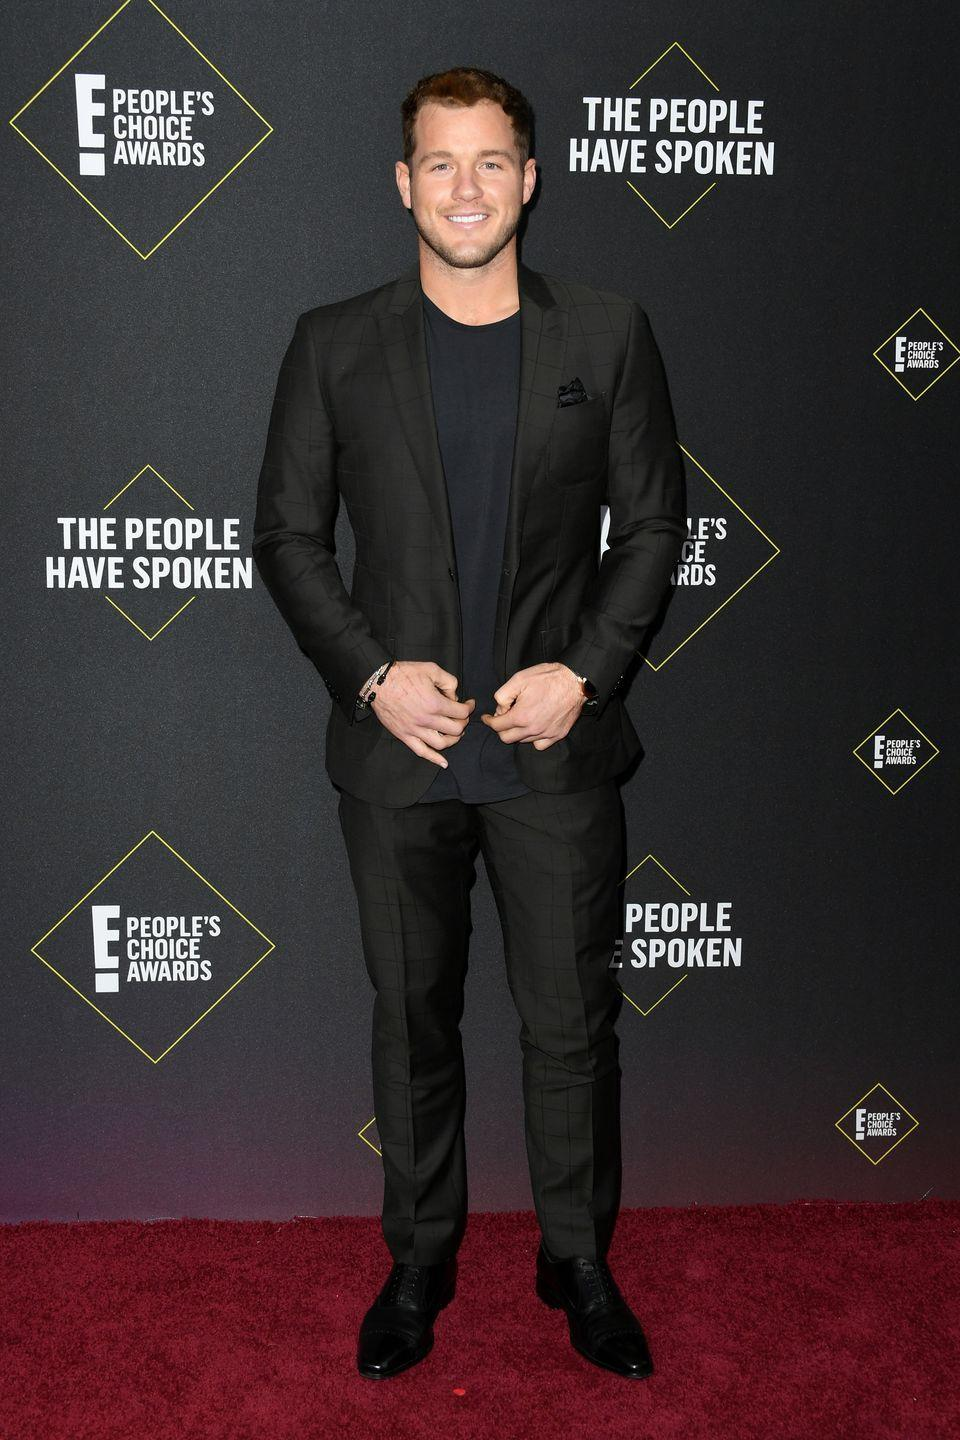 """<p>The former <em>Bachelor</em> and NFL athlete isn't exactly new to fitness—but he is new to adapting it to be more functional, rather than about muscle definition. """"I played football all of my life and my main goal in football was to get big and bulky,"""" he told <em><a href=""""https://www.menshealth.com/fitness/a31135794/colton-underwood-bachelor-workout/"""" rel=""""nofollow noopener"""" target=""""_blank"""" data-ylk=""""slk:Men's Health"""" class=""""link rapid-noclick-resp"""">Men's Health</a></em>. """"Now that I'm not playing anymore, my main exercise goals [are] to lean out and be functional.""""</p><p><a class=""""link rapid-noclick-resp"""" href=""""https://www.youtube.com/watch?v=WVcABZbK8L8"""" rel=""""nofollow noopener"""" target=""""_blank"""" data-ylk=""""slk:Watch here"""">Watch here</a></p>"""